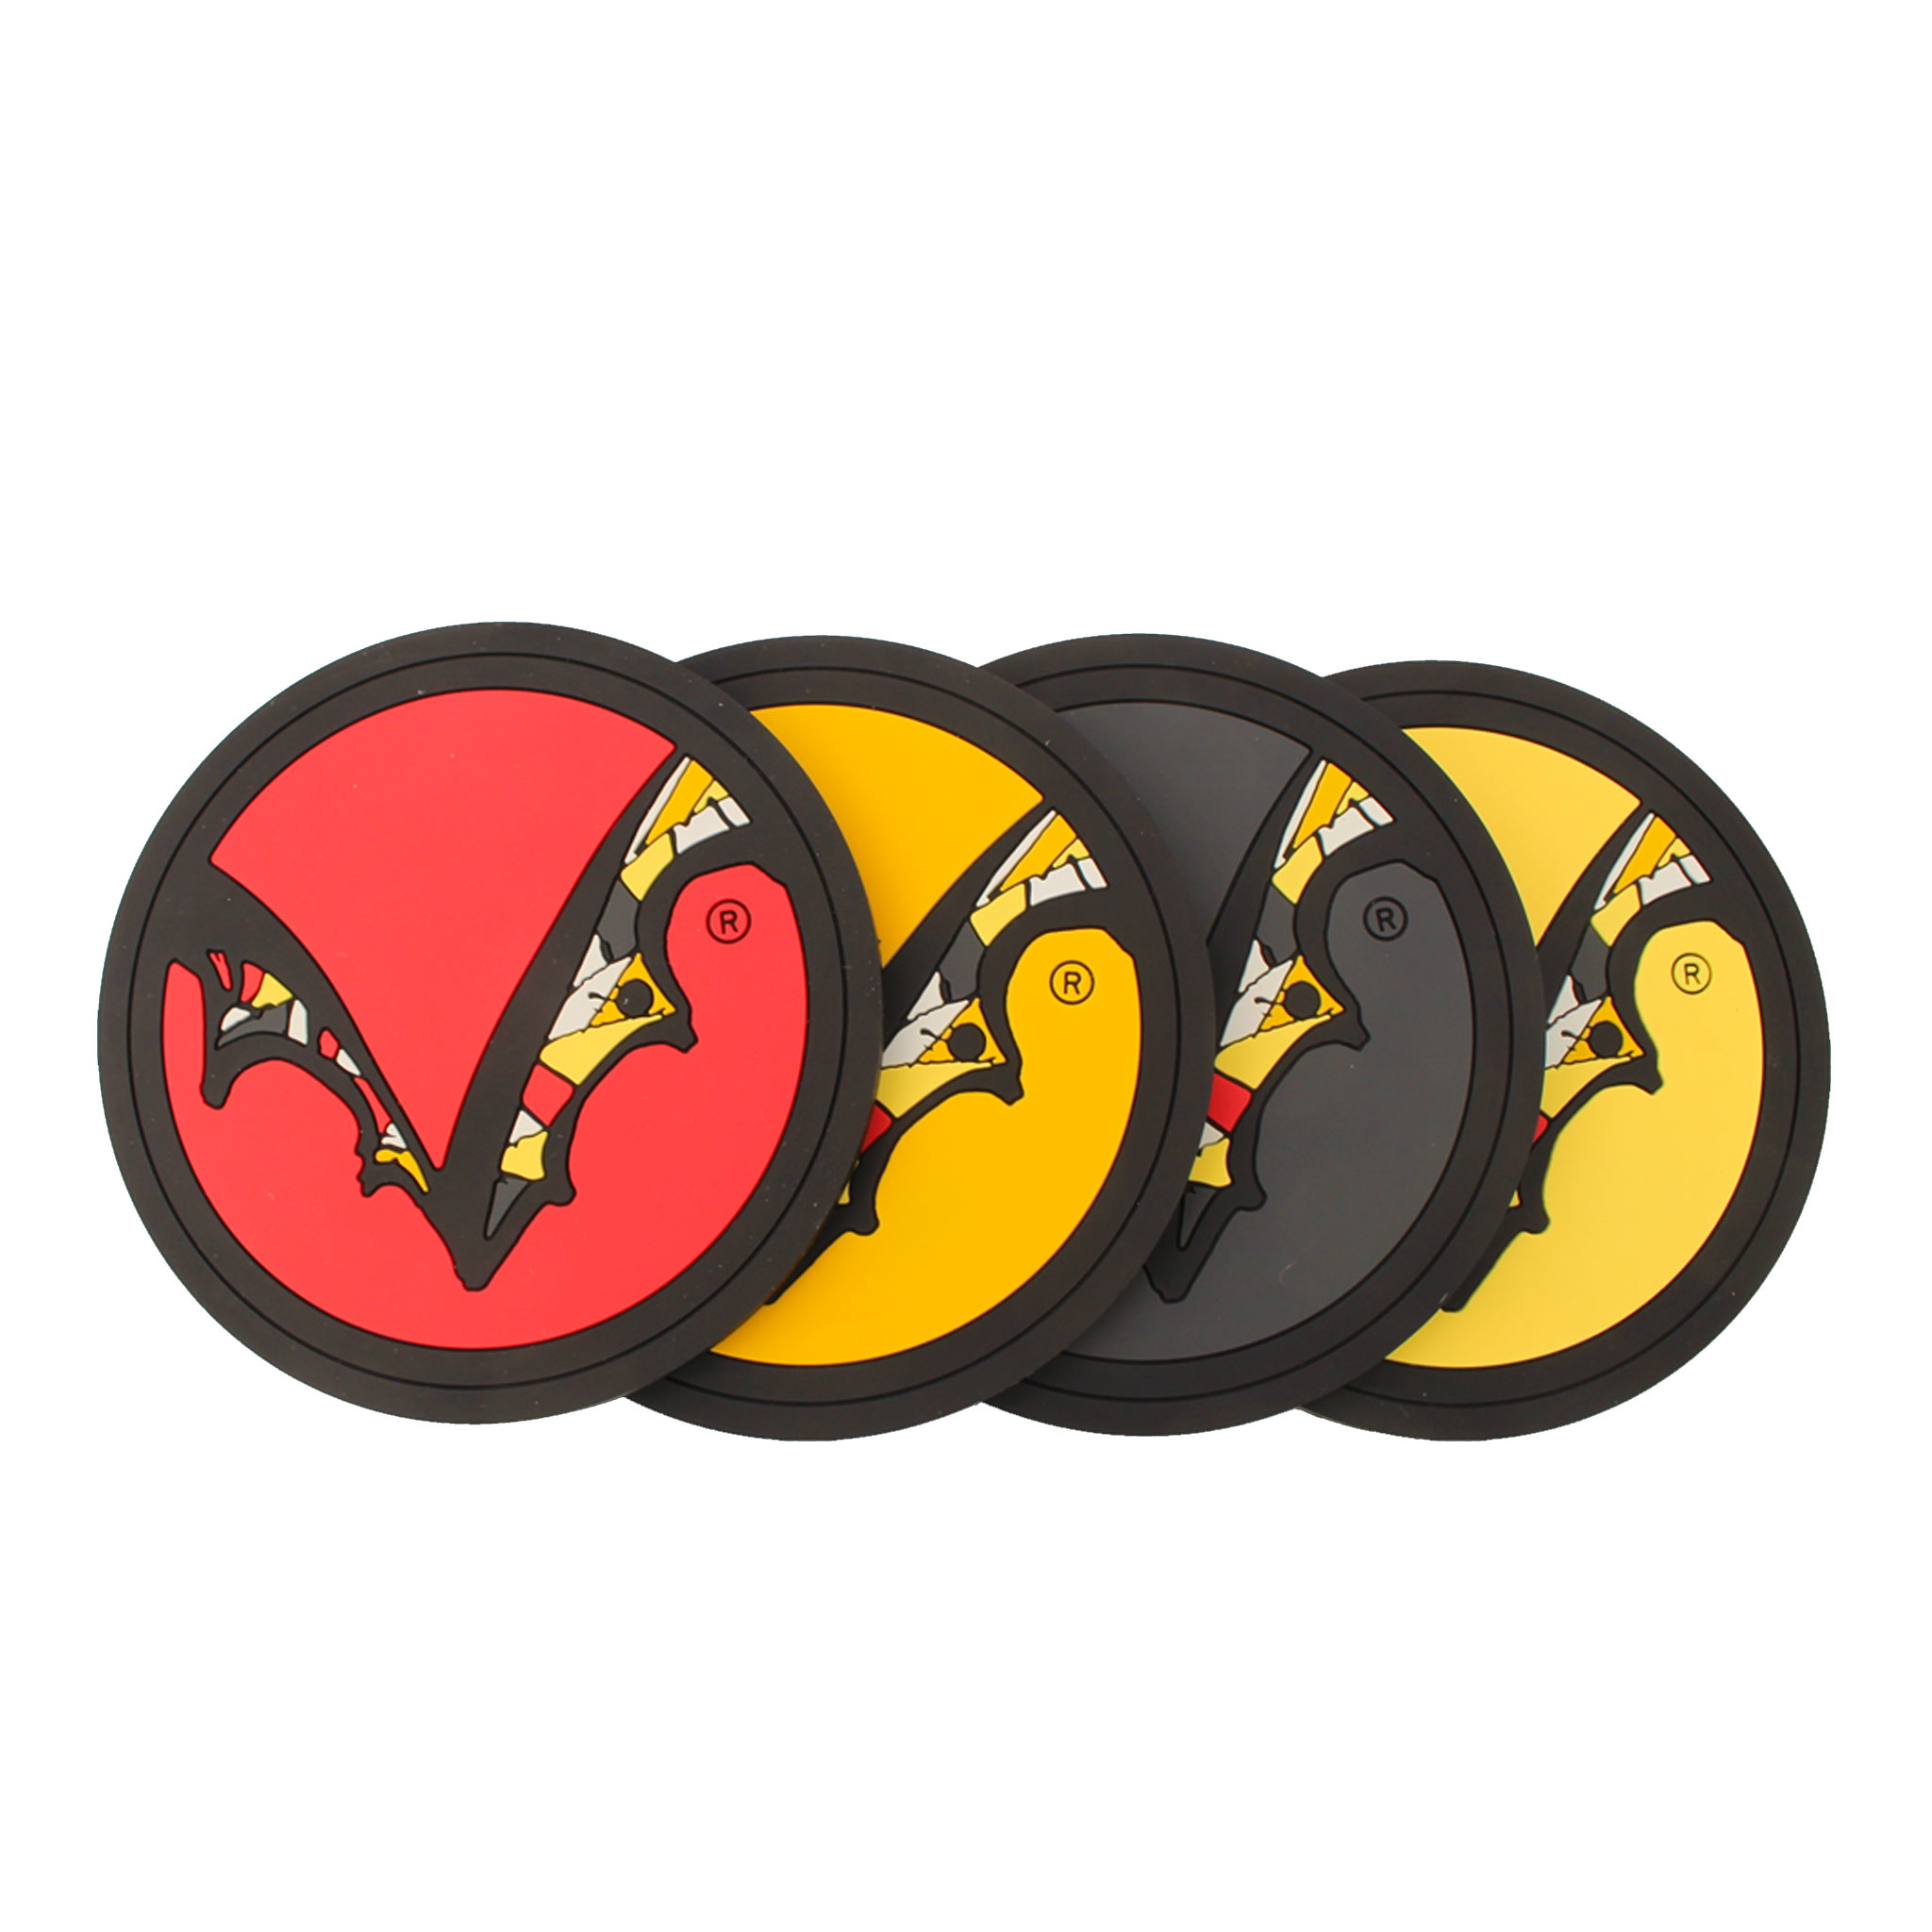 Flying Dog 4 Pack Silicone Coasters